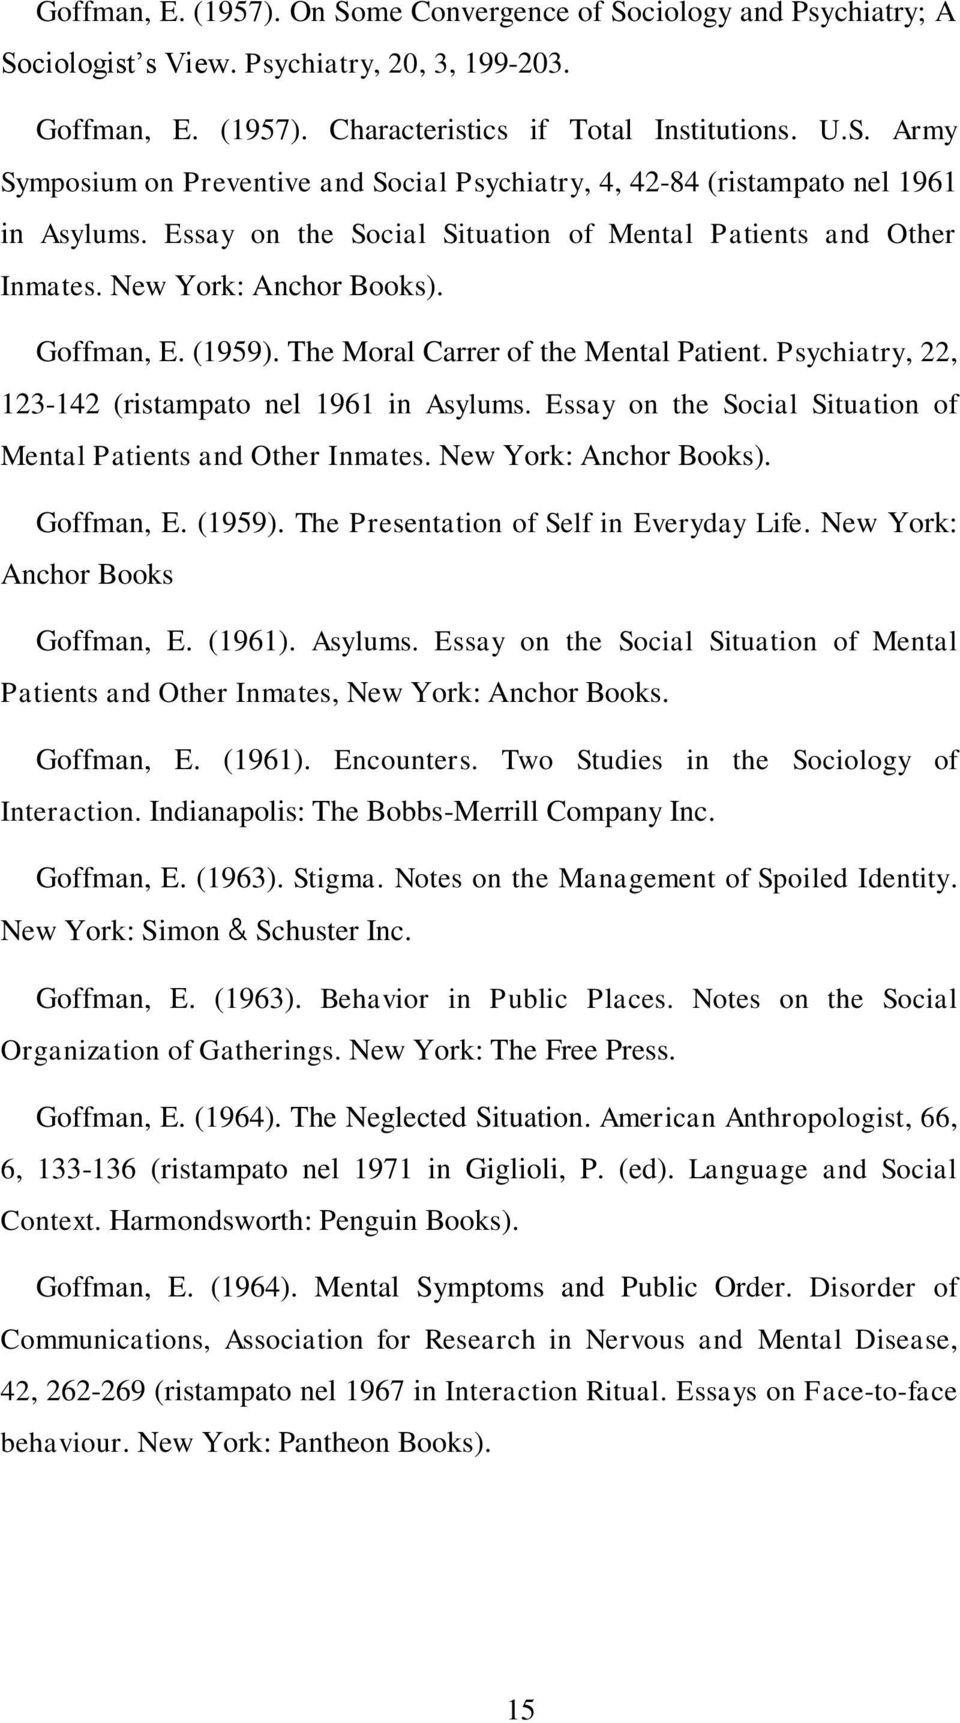 Psychiatry, 22, 123-142 (ristampato nel 1961 in Asylums. Essay on the Social Situation of Mental Patients and Other Inmates. New York: Anchor Books). Goffman, E. (1959).